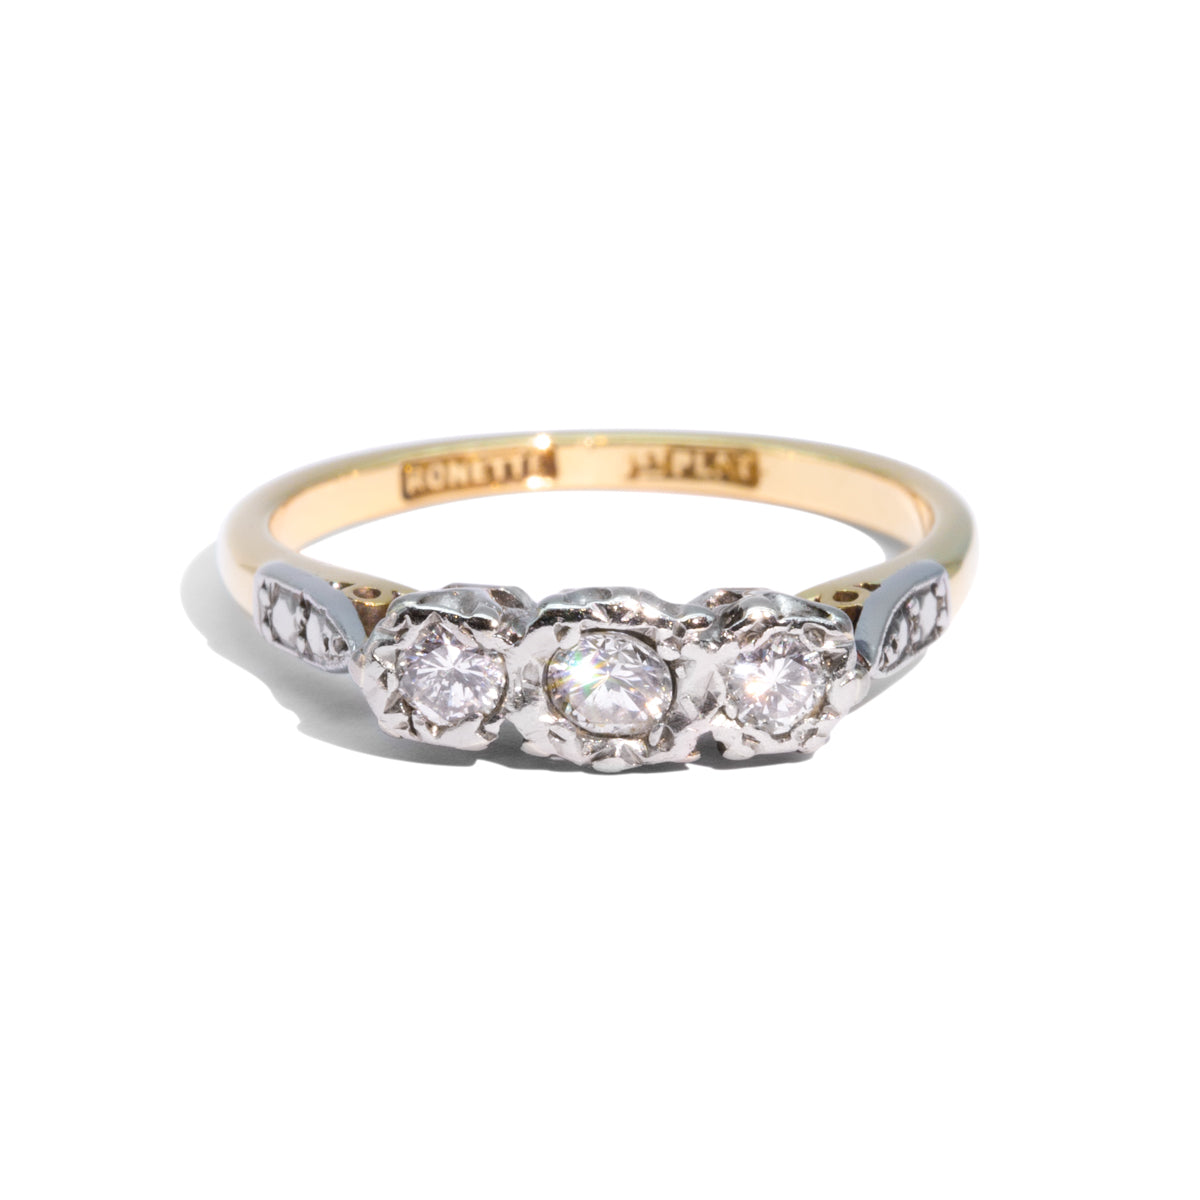 The Kennedy Vintage Diamond Ring